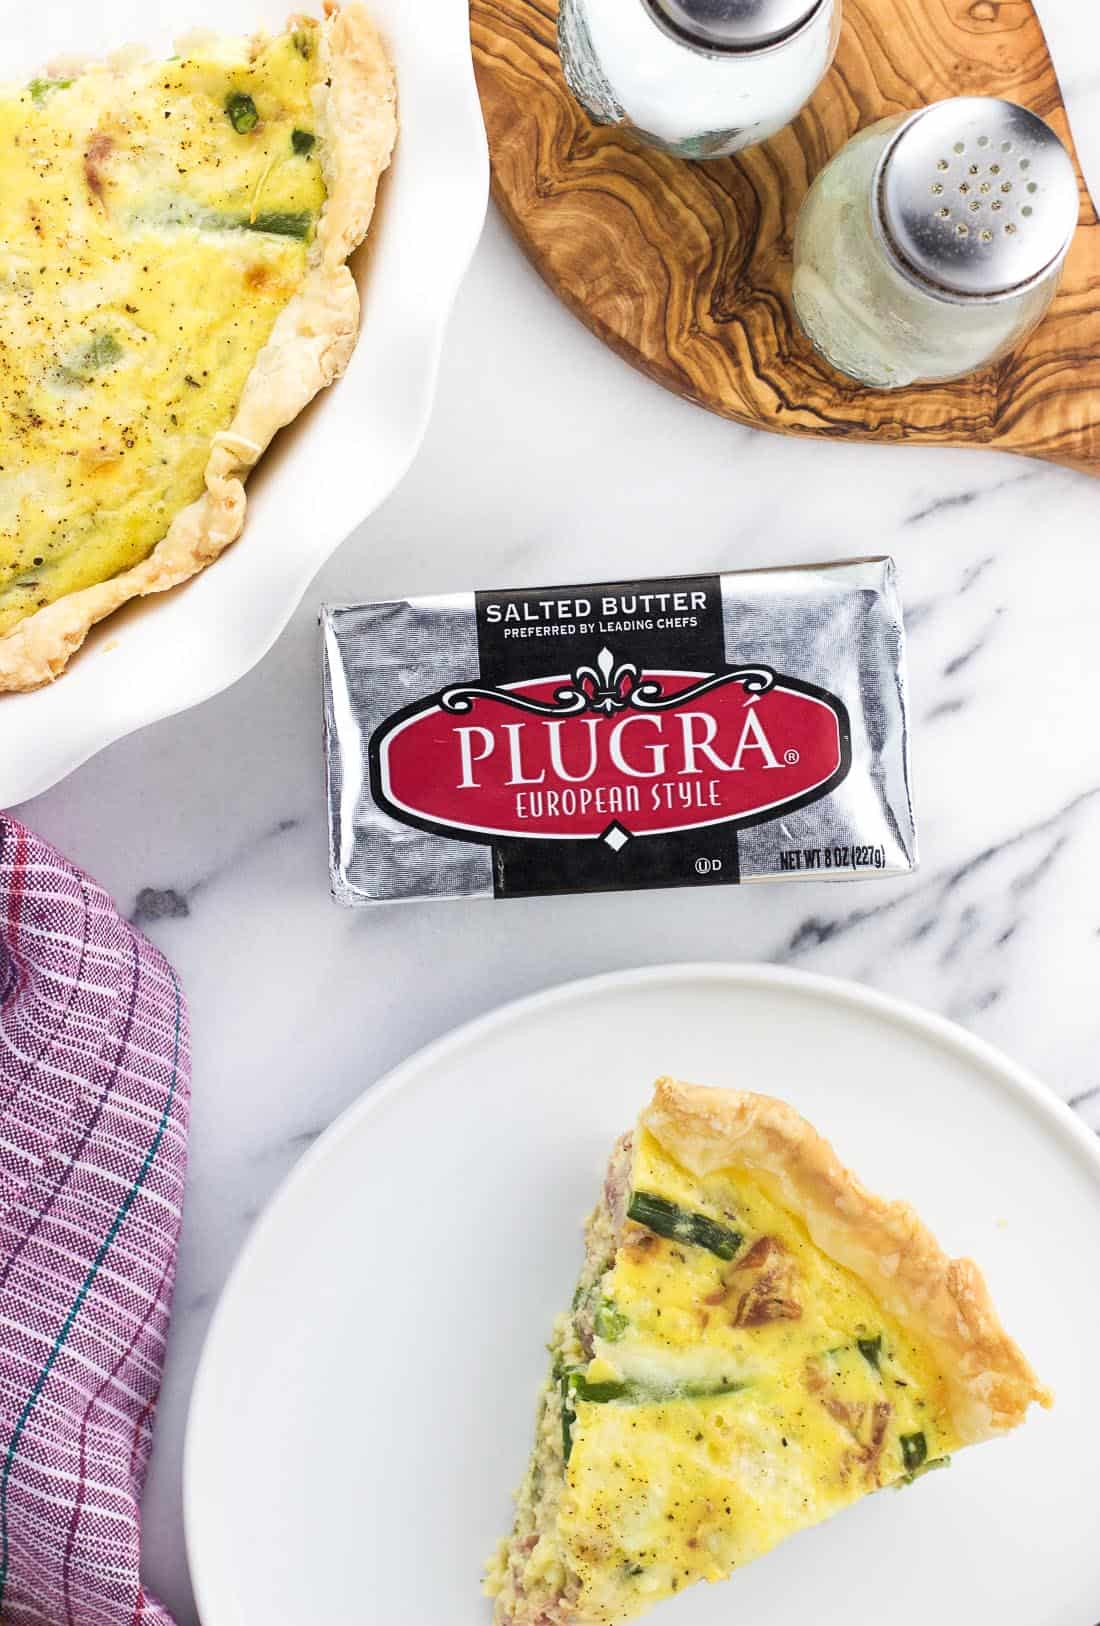 A package of Plugra butter on a marble board surrounded by a slice of quiche on a plate and the rest of the quiche in a pie plate